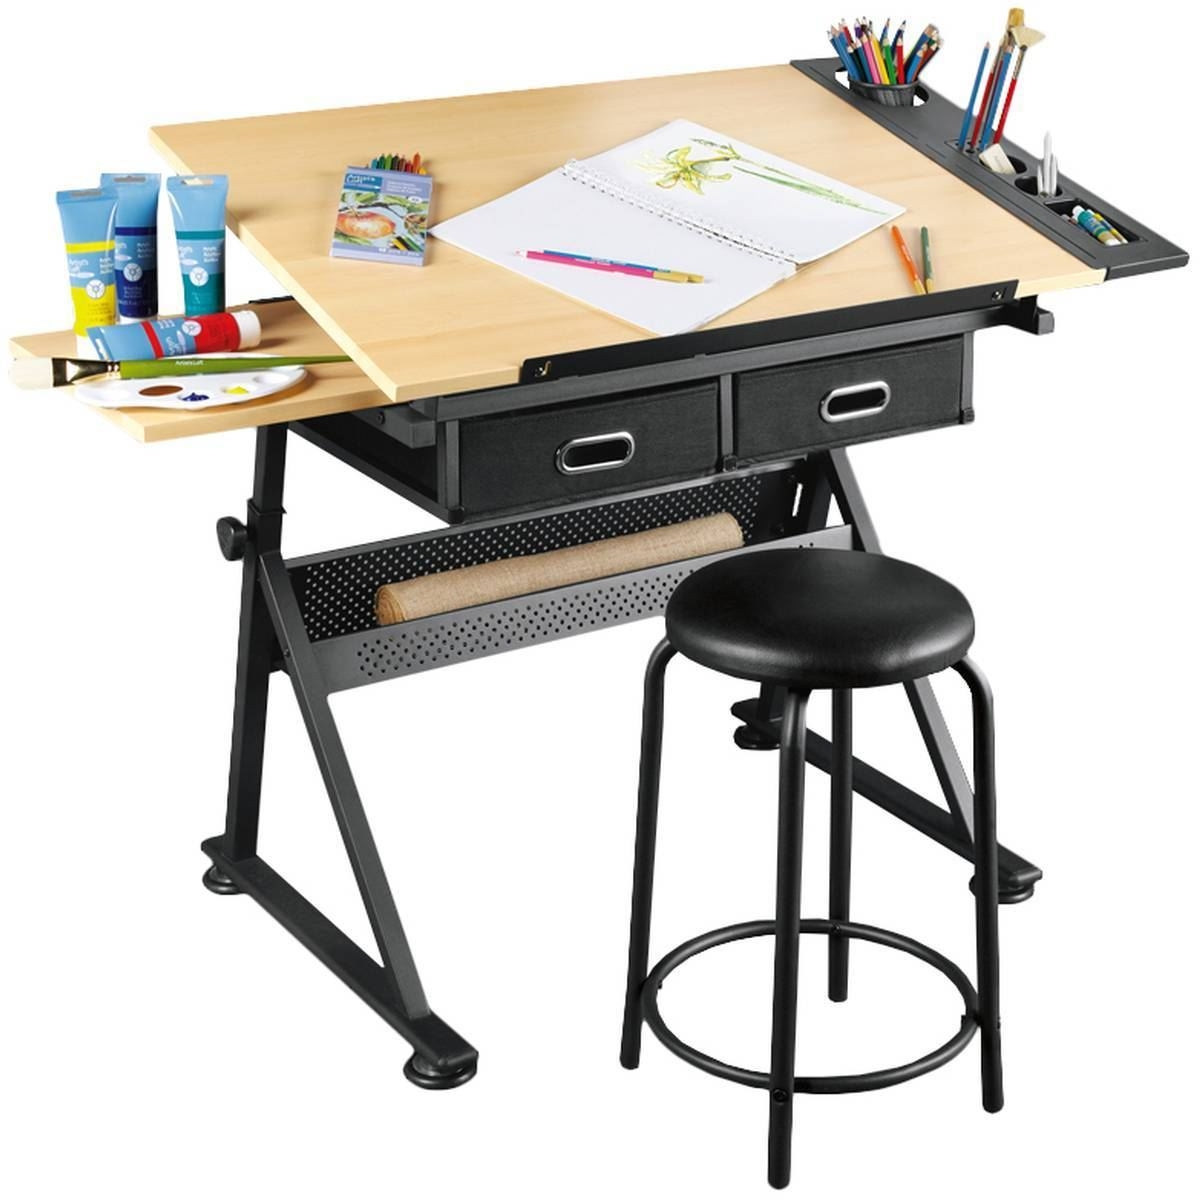 Drafting table with storage  sc 1 st  Foter & Art Table For Kids With Storage - Foter